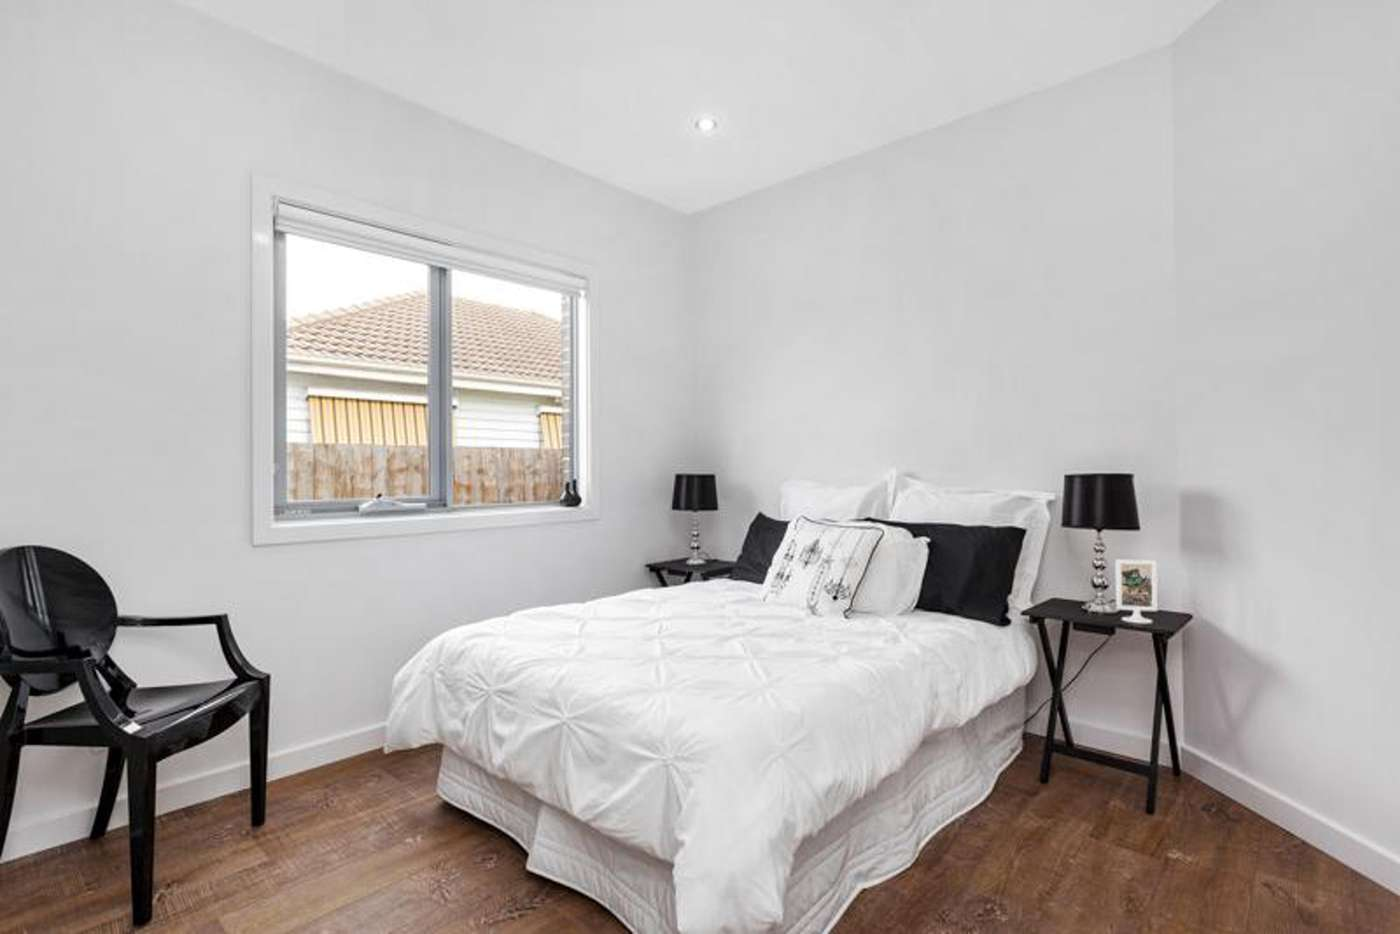 Seventh view of Homely townhouse listing, 50 Angus Avenue, Altona North VIC 3025